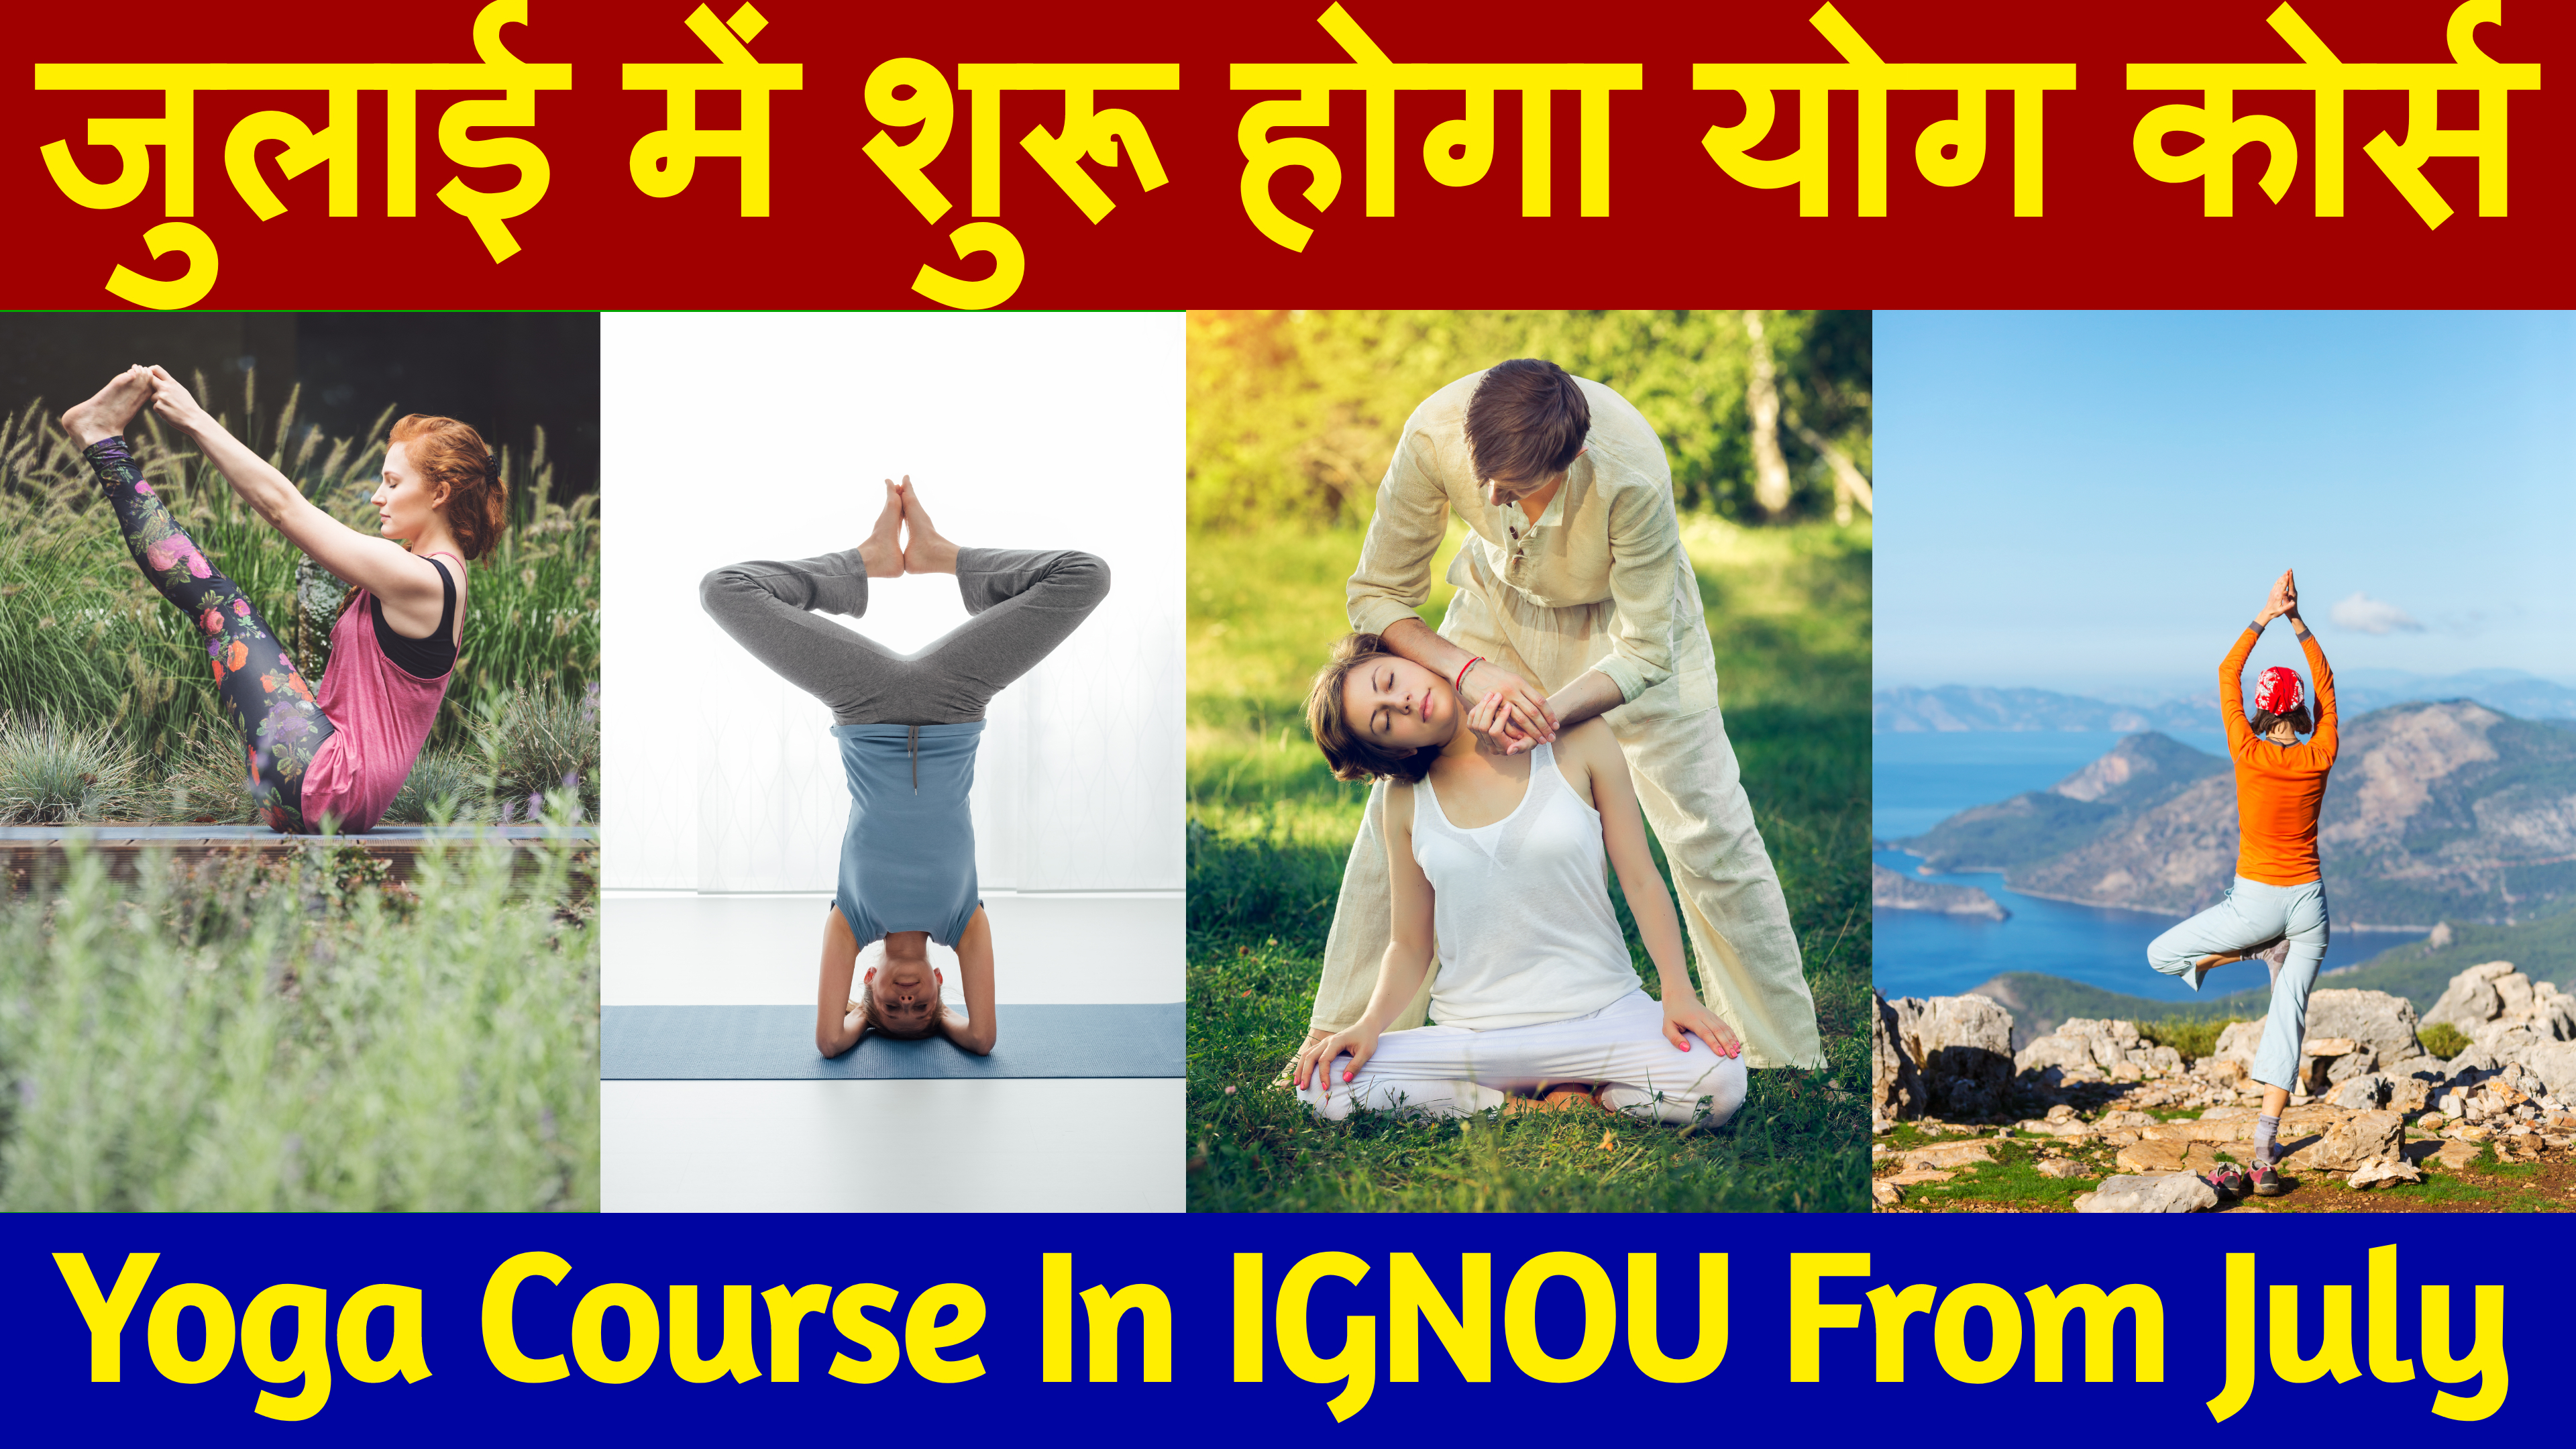 IGNOU Yoga